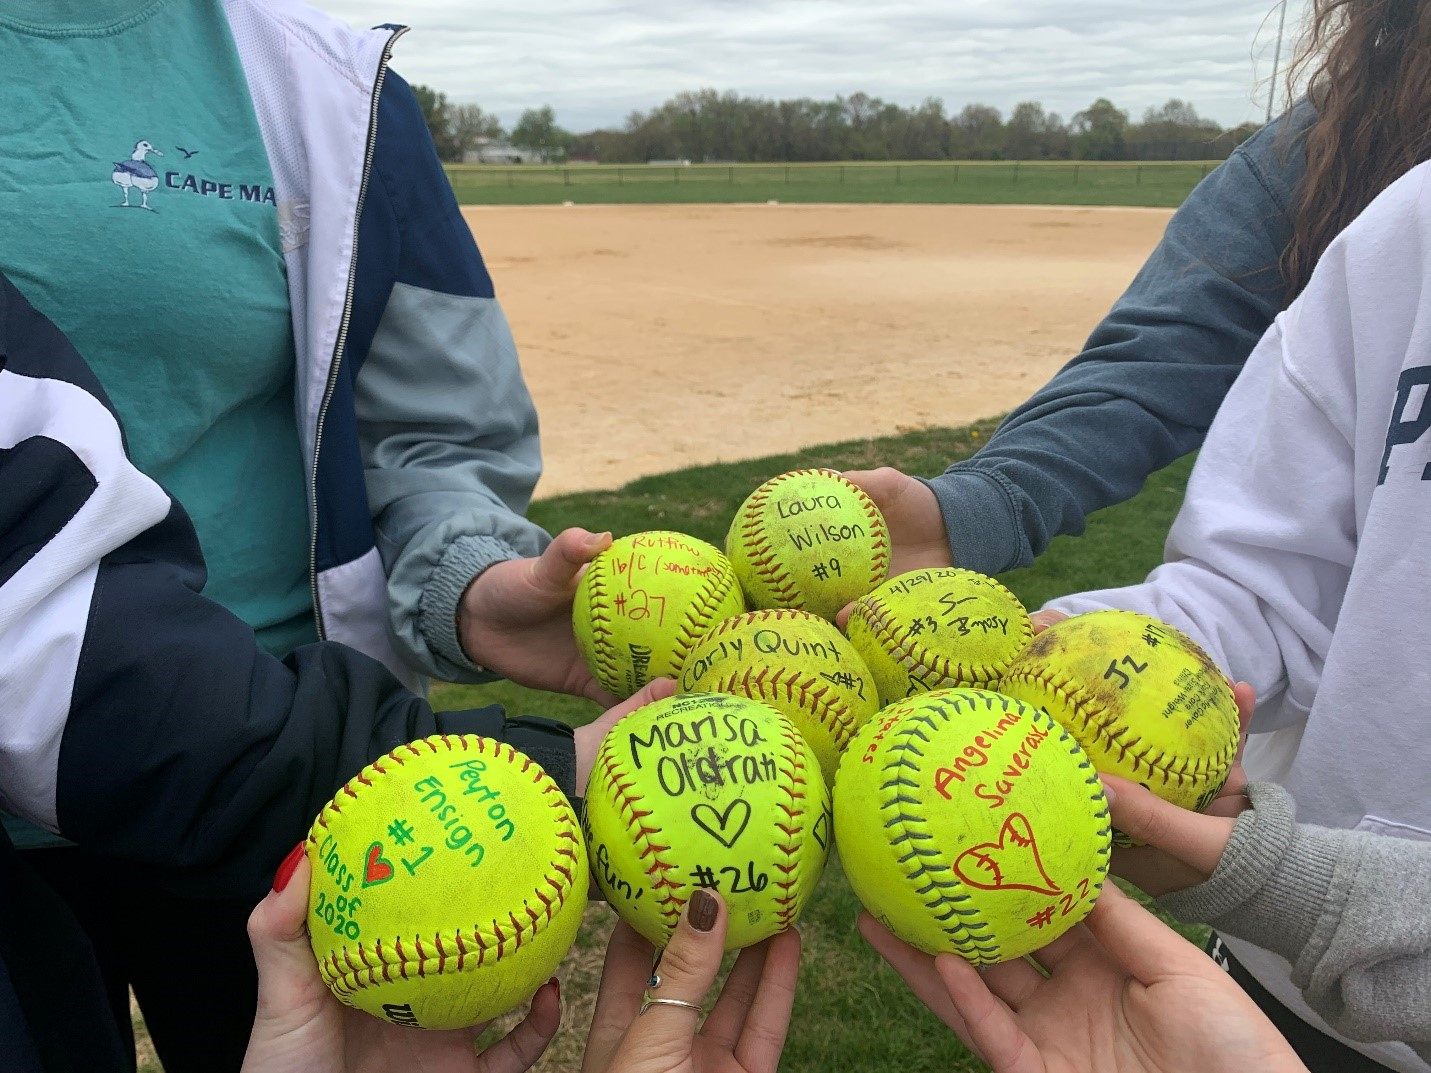 The team signs softballs commemorating their camaraderie.